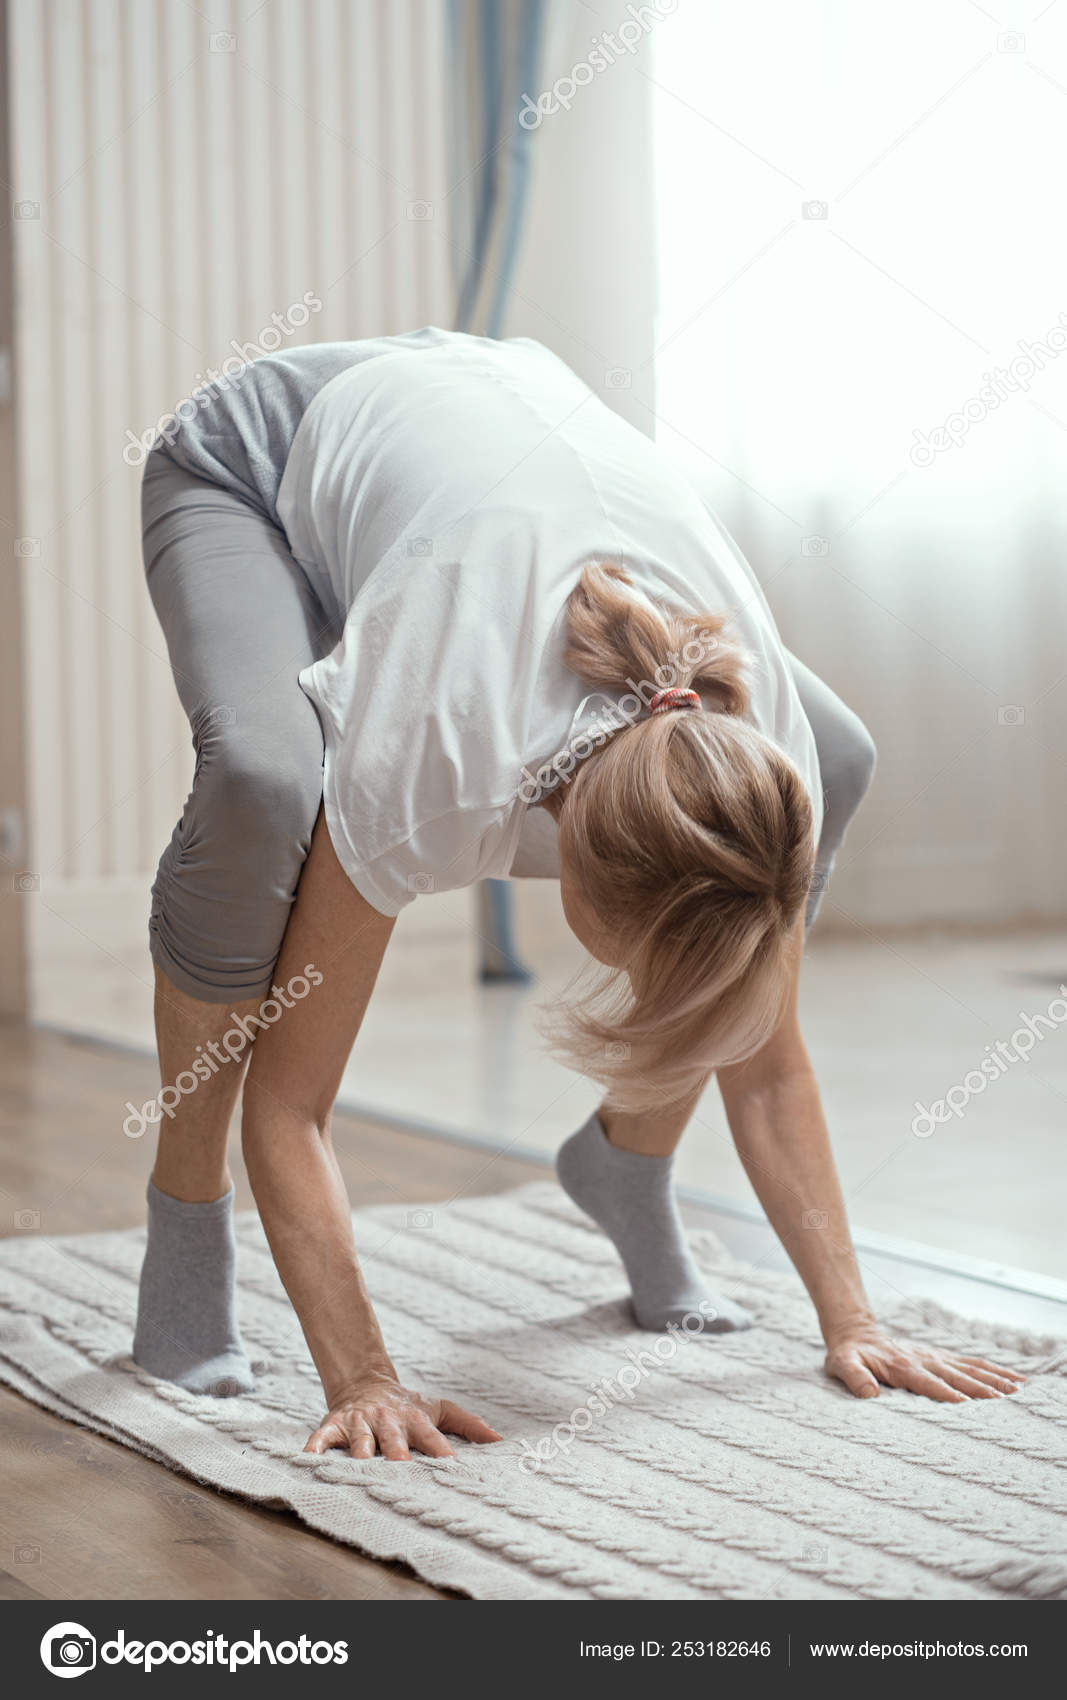 Pictures Women Over 50 European Looking Woman Over 50 Years Old Doing Yoga At Home In The Living Room Stock Photo C Svyatoslavlipik 253182646